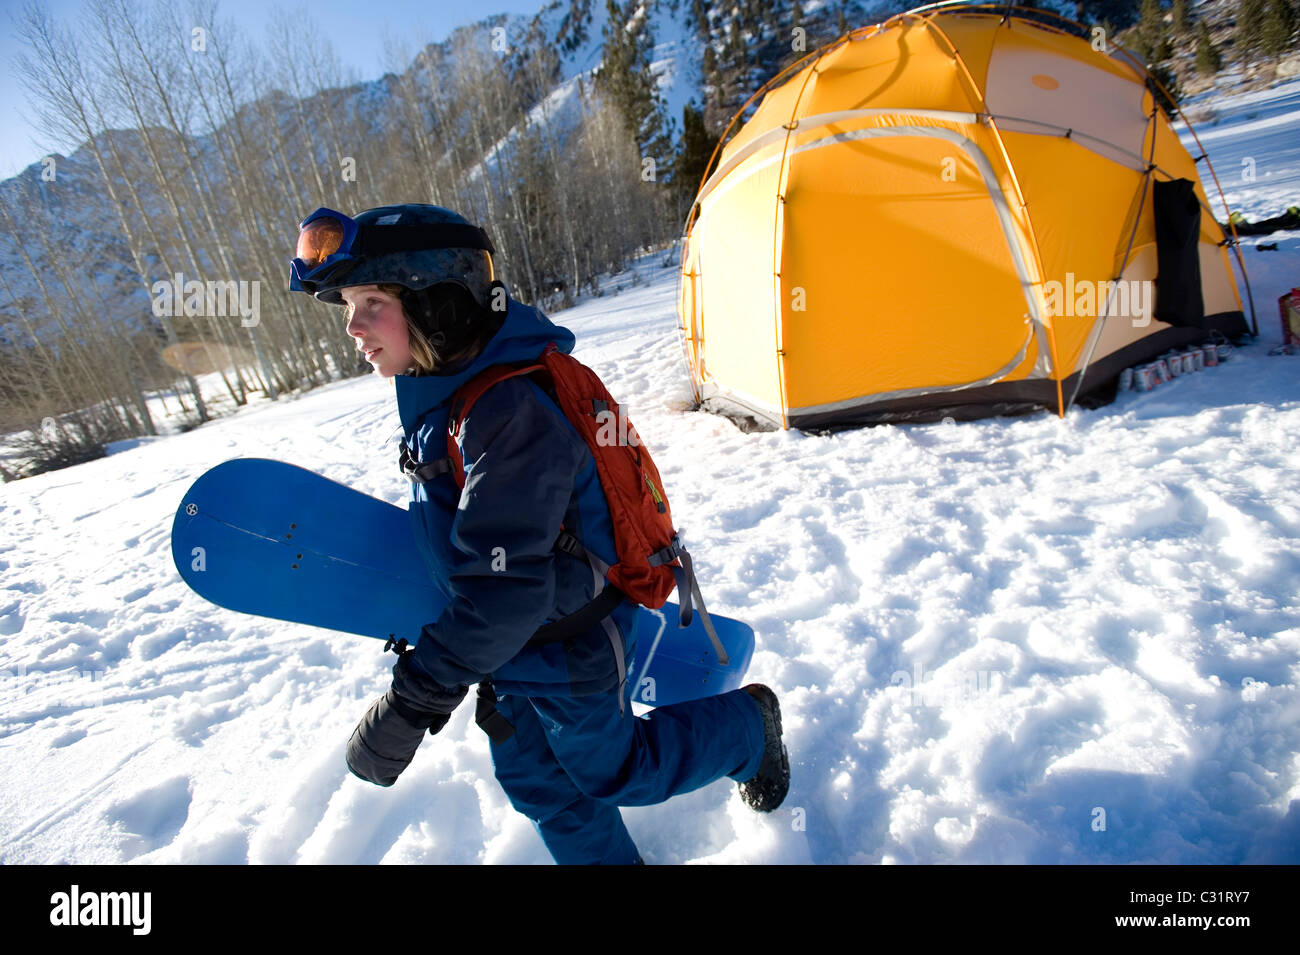 A boy gets ready to snowboard in the California backcountry. - Stock Image